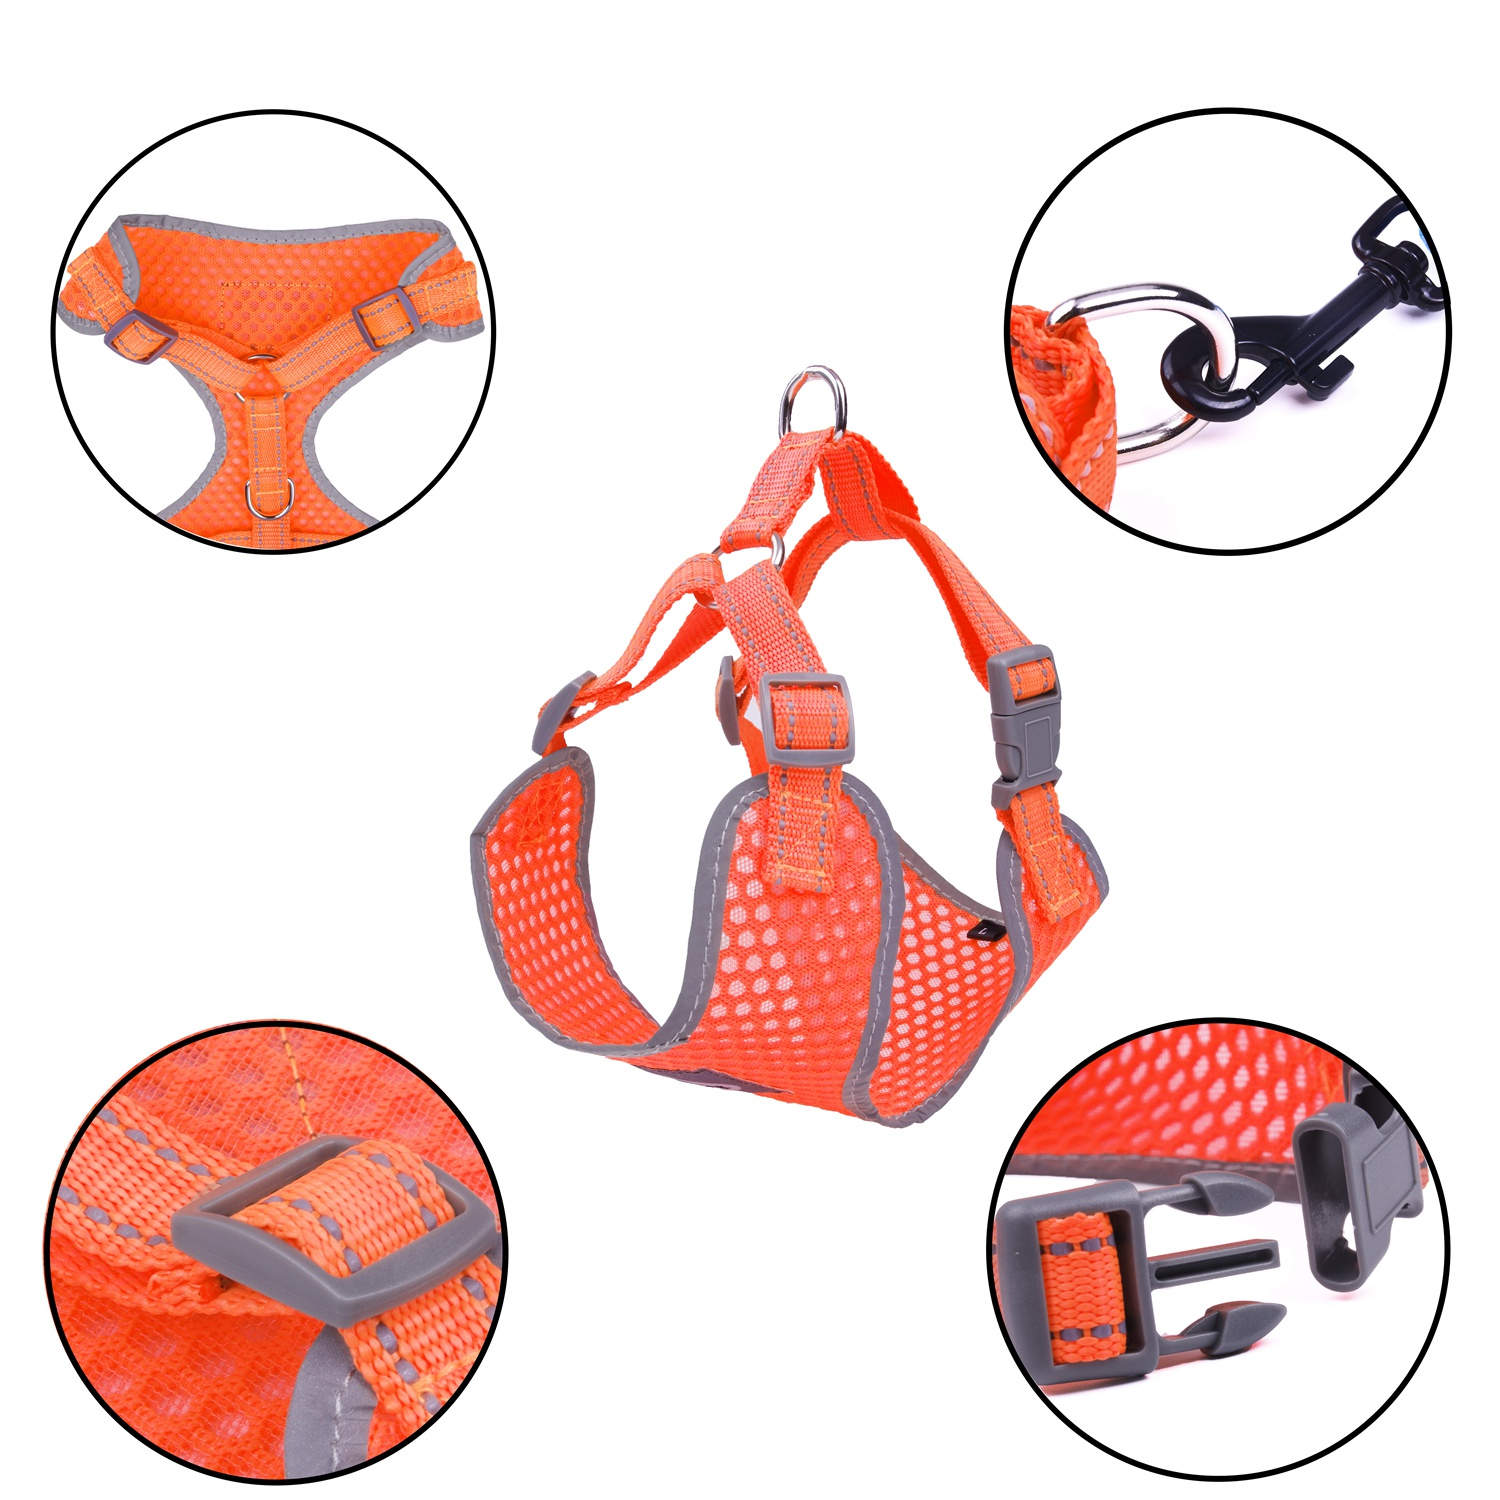 Breathable-Mesh-Puppy-Dog-Harness-Vest-Adjustable-Soft-Walk-Collar-No-Pull thumbnail 18